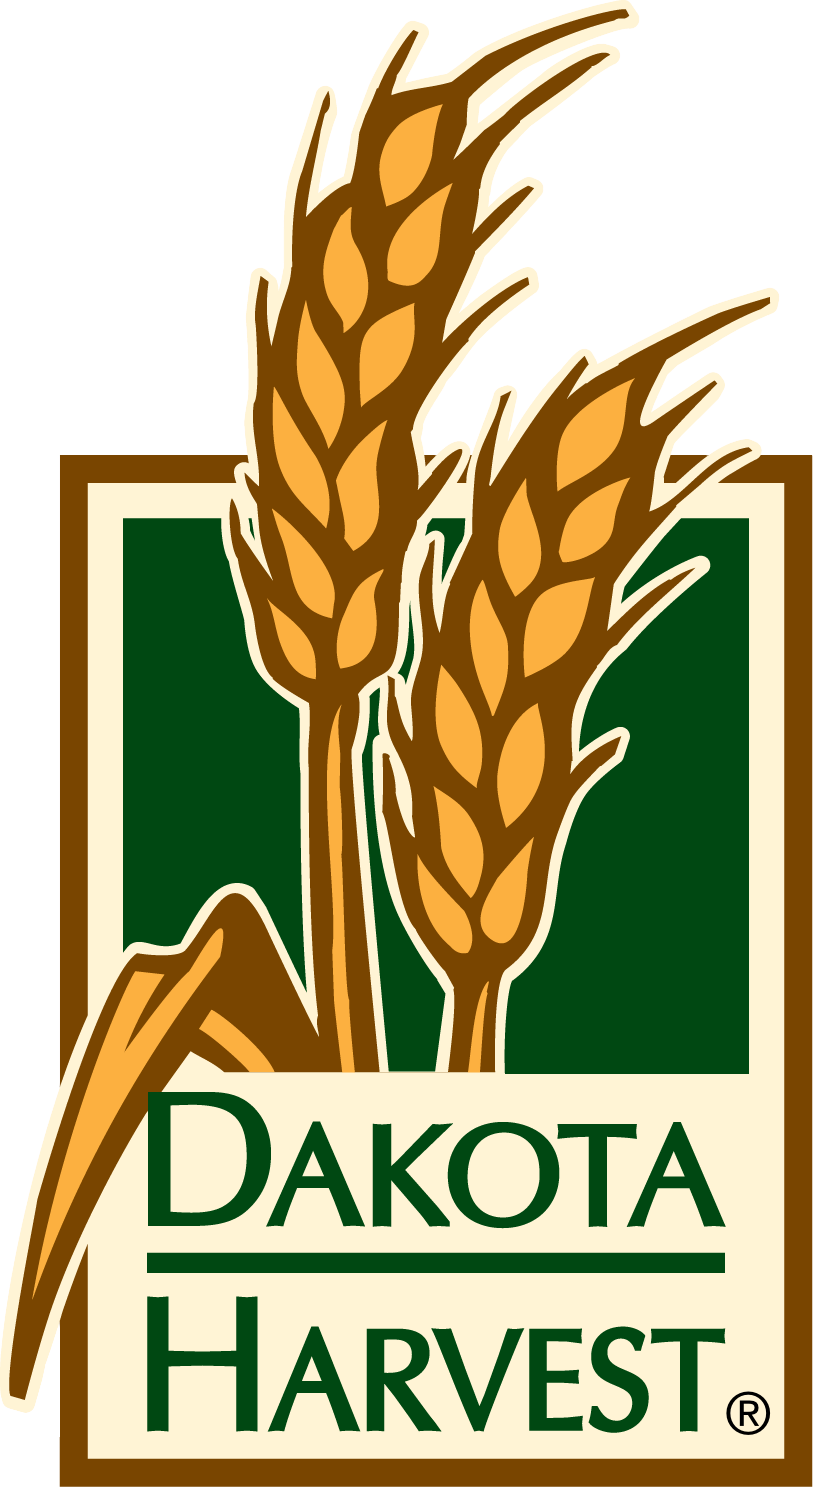 Dakota Harvest Logo